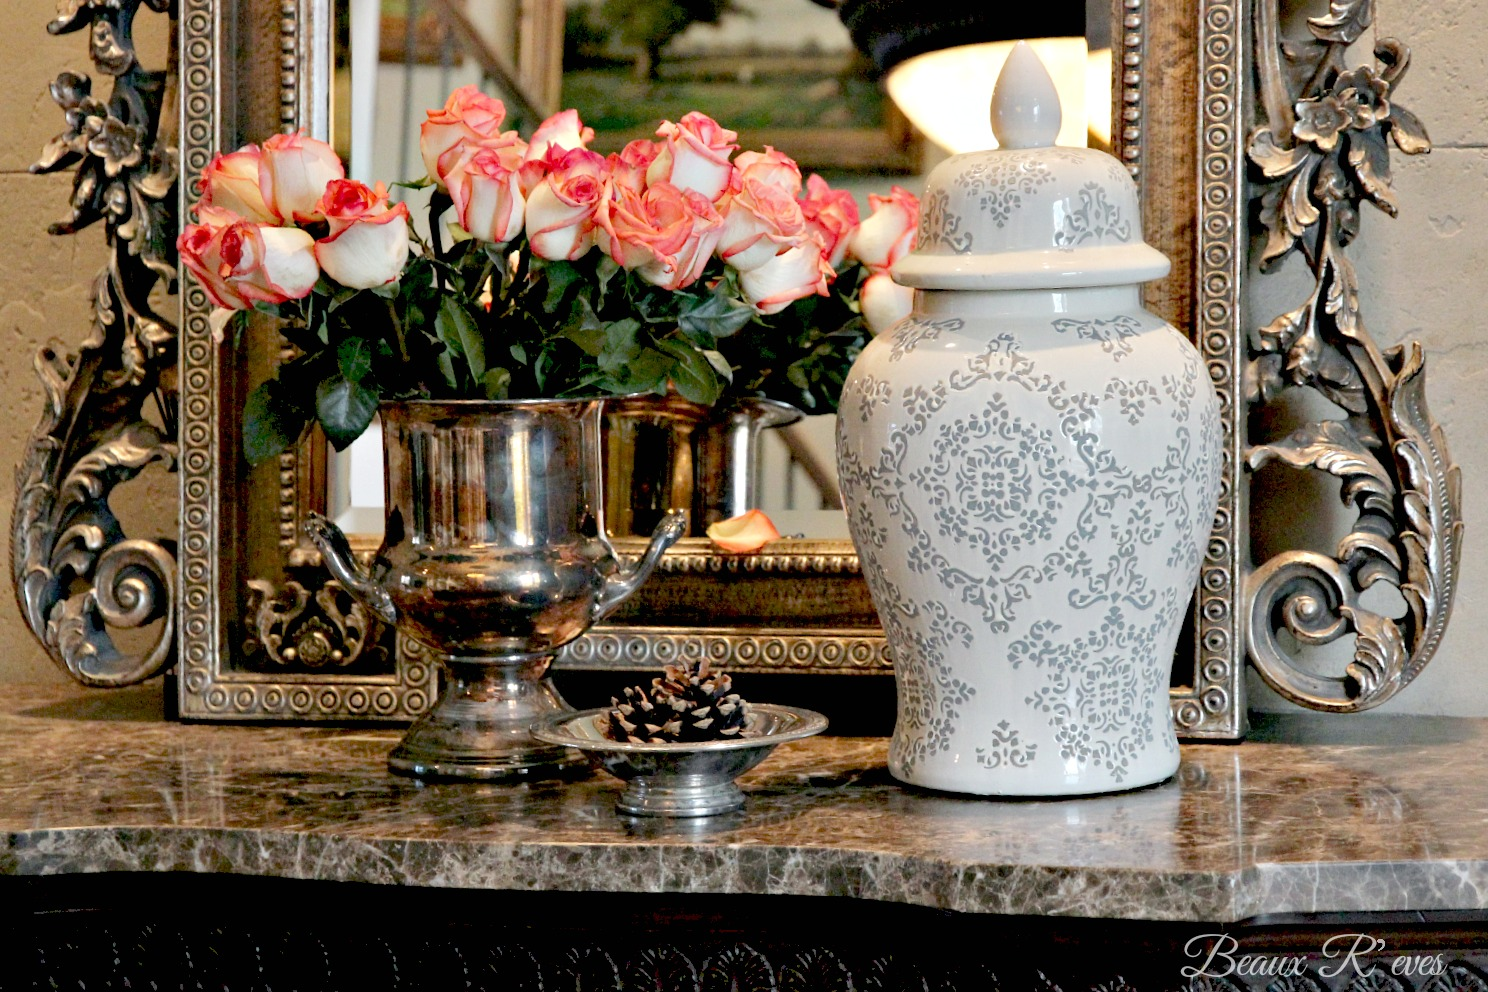 Beaux R'eves -Romantic Vignette-Treasure Hunt Thursday- From My Front Porch To Yours